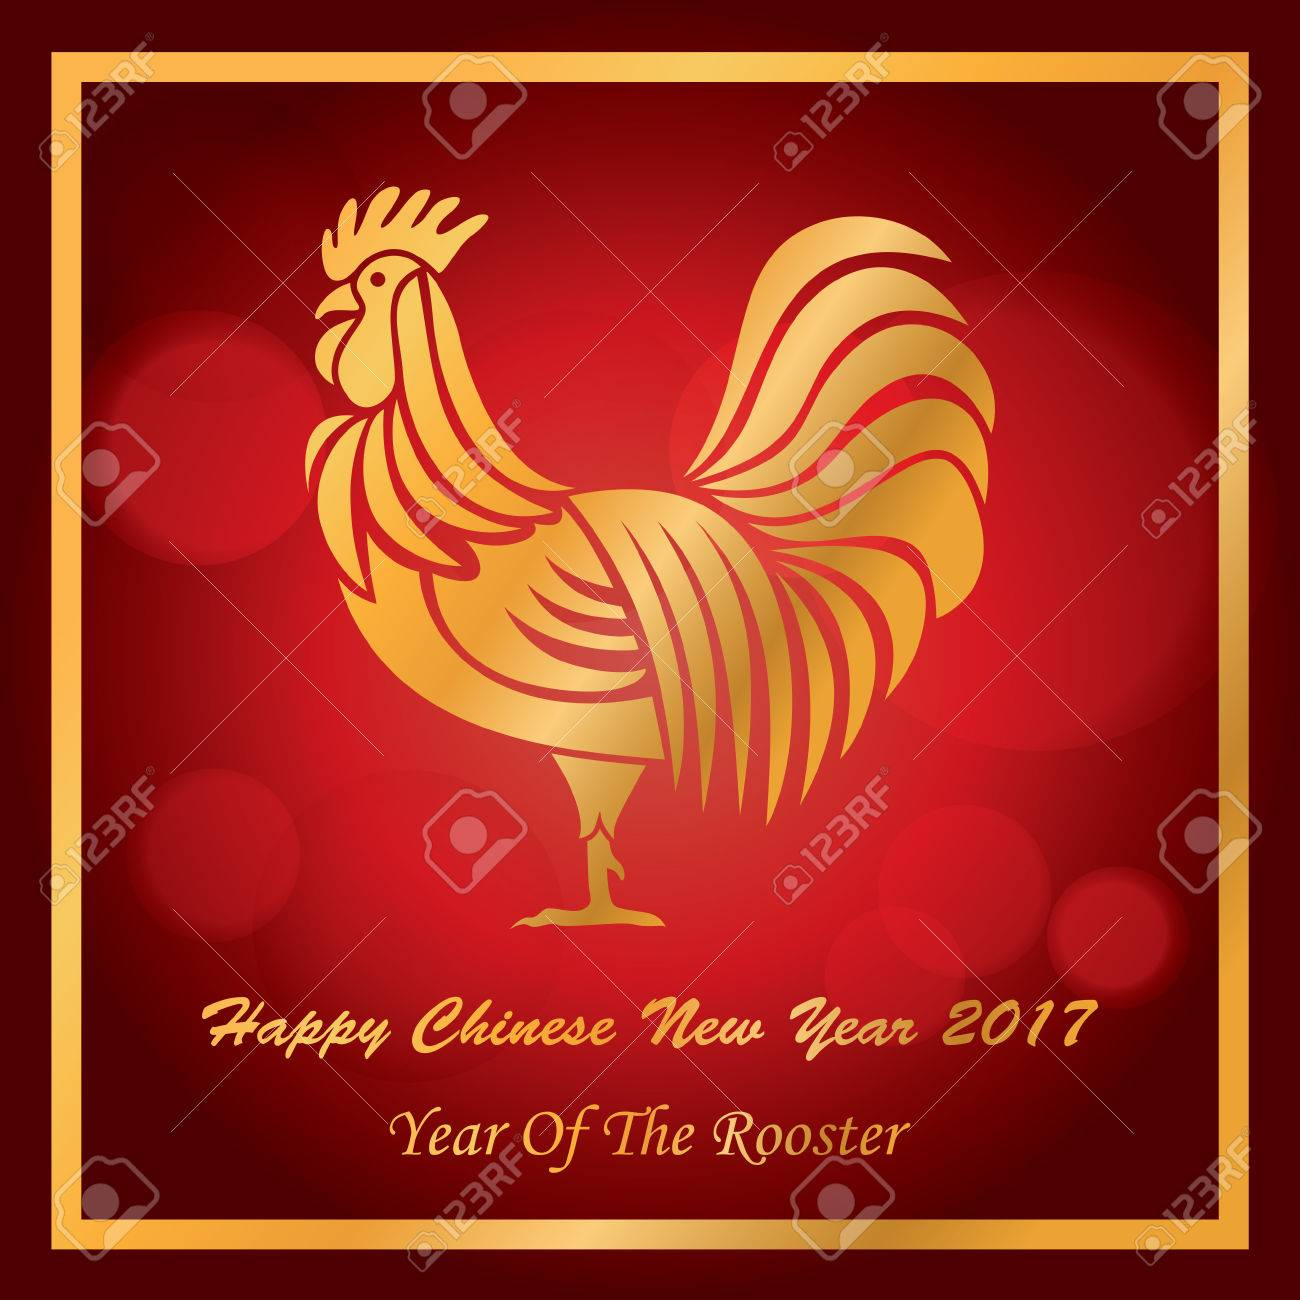 New year 2017 greeting pictures year of rooster happy chinese new year - Happy Chinese New Year 2017 Card Year Of The Rooster Vector Stock Vector